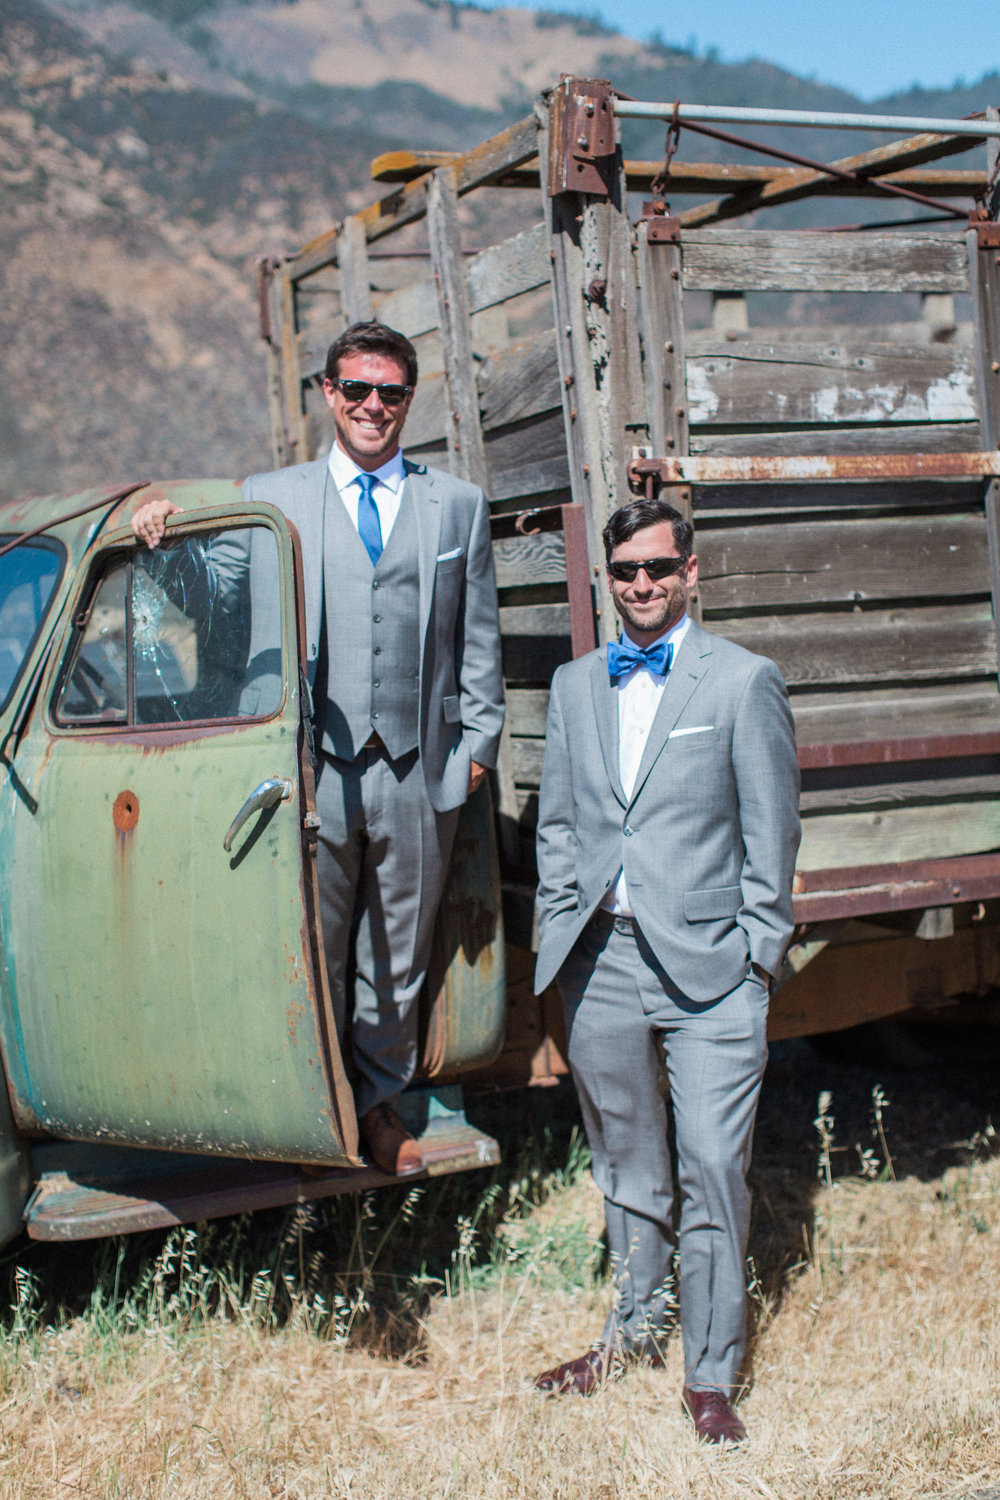 santabarbarawedding.com | photo: Kiel Rucker | Mountaintop Wedding Location Santa Ynez